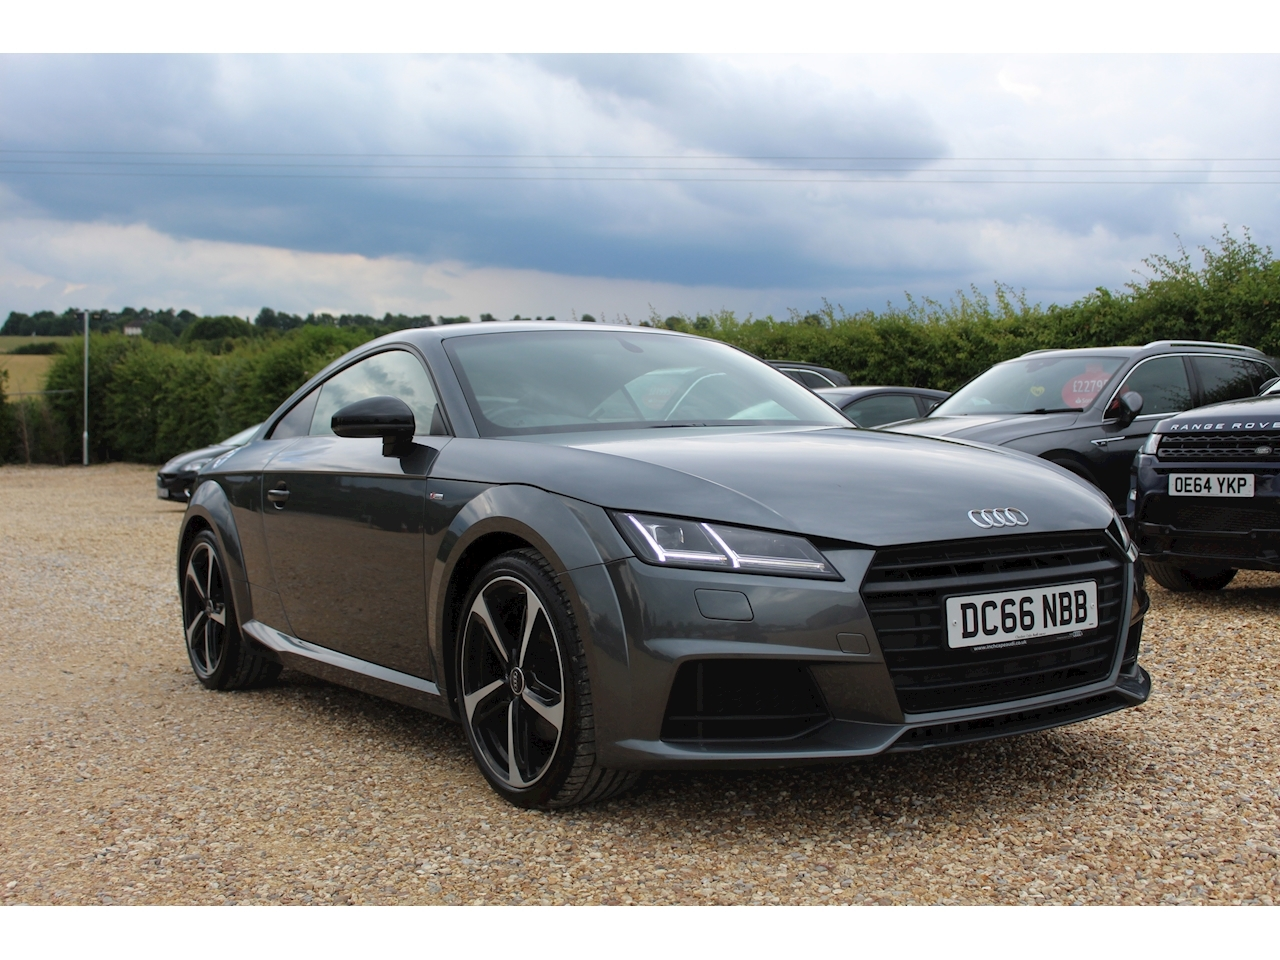 Audi Tt Tfsi S Line Black Edition Coupe 1.8 Manual Petrol